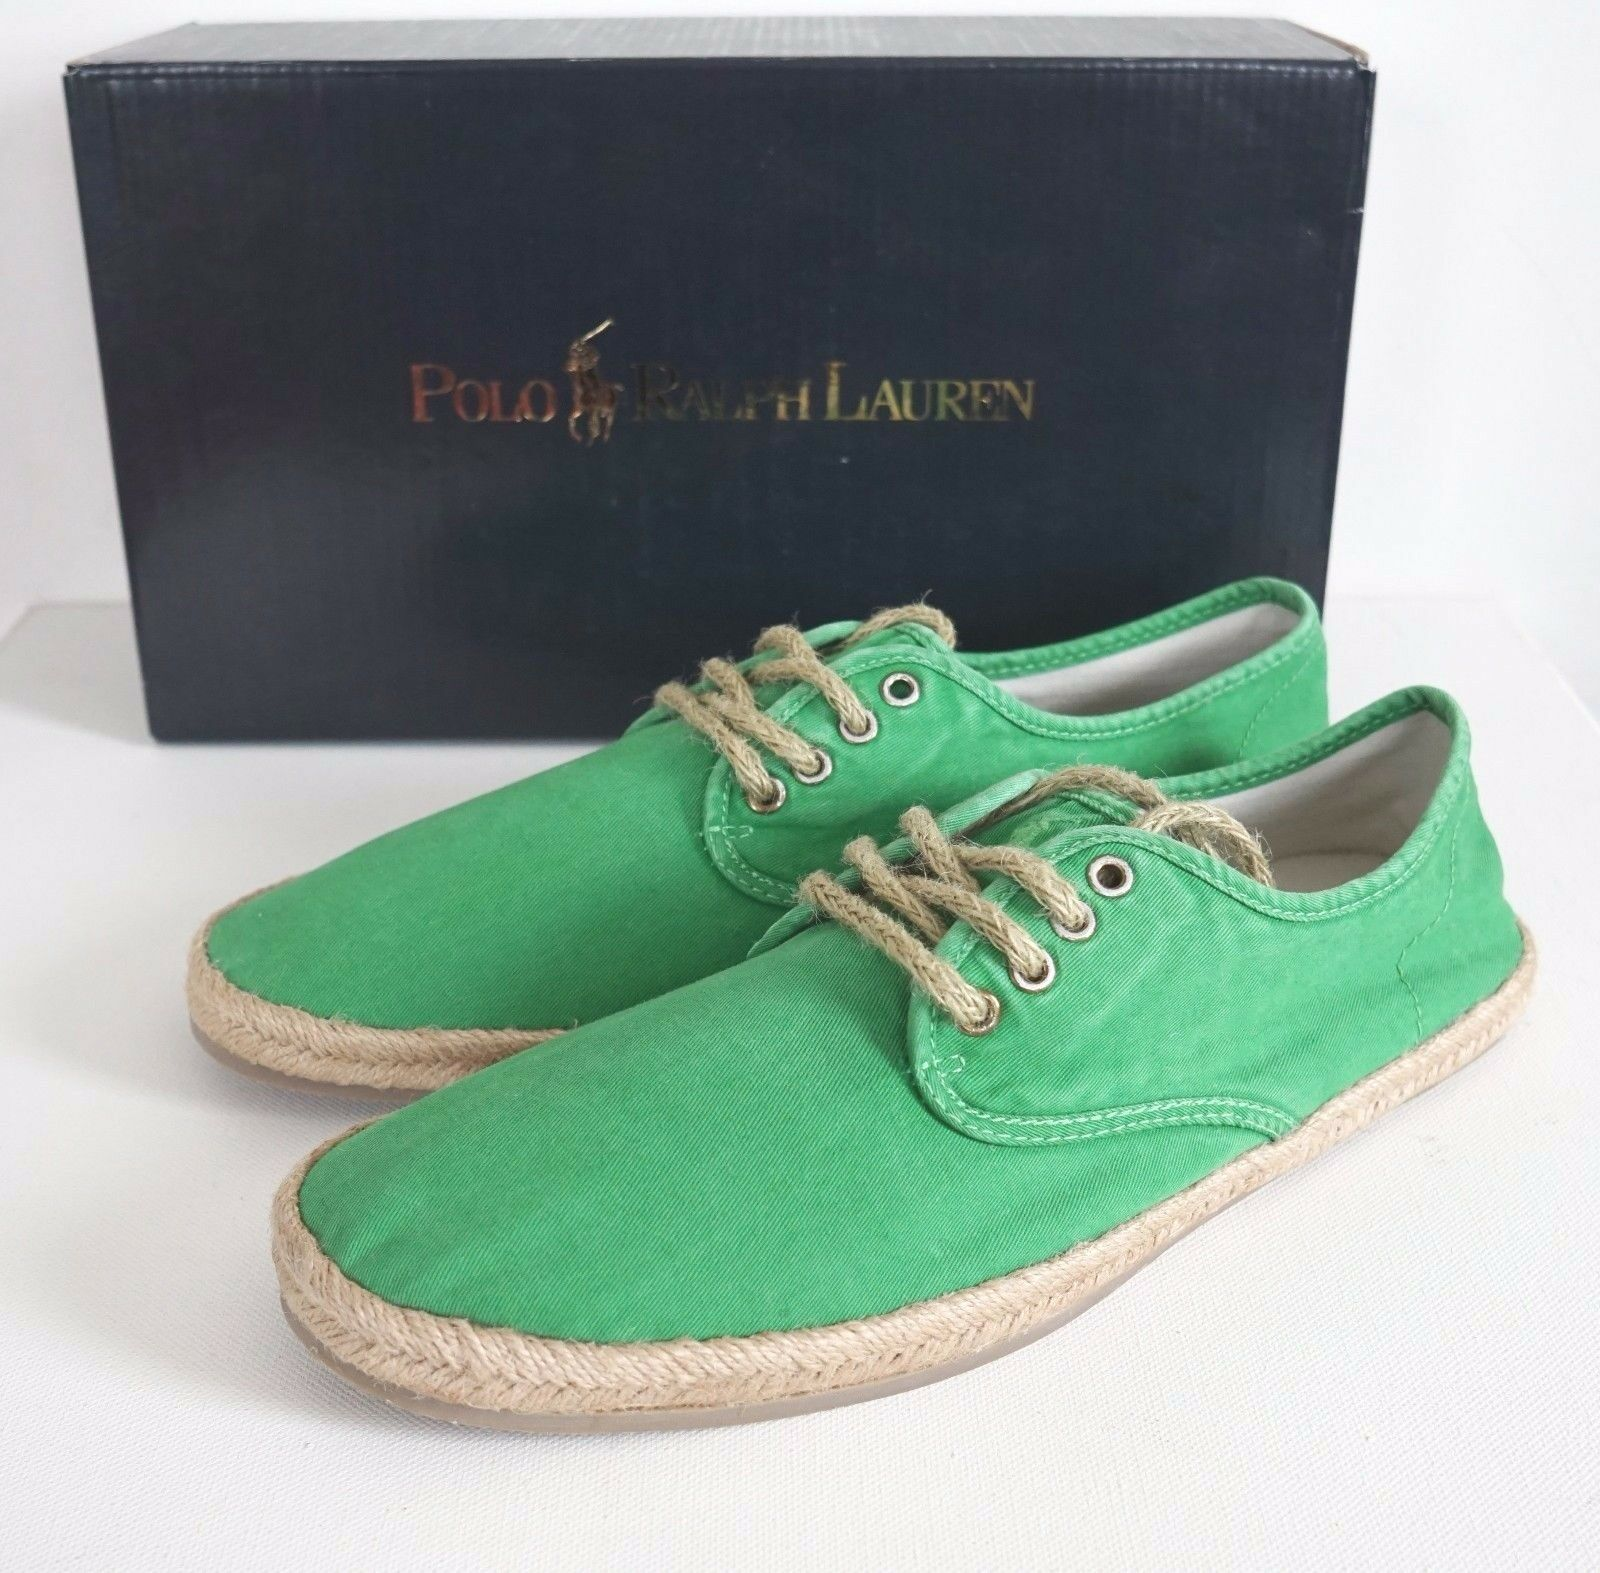 Auth POLO RALPH LAUREN SHORTLANDS Green Rope Canvas Casual Shoes 10.5D EUR-43.5